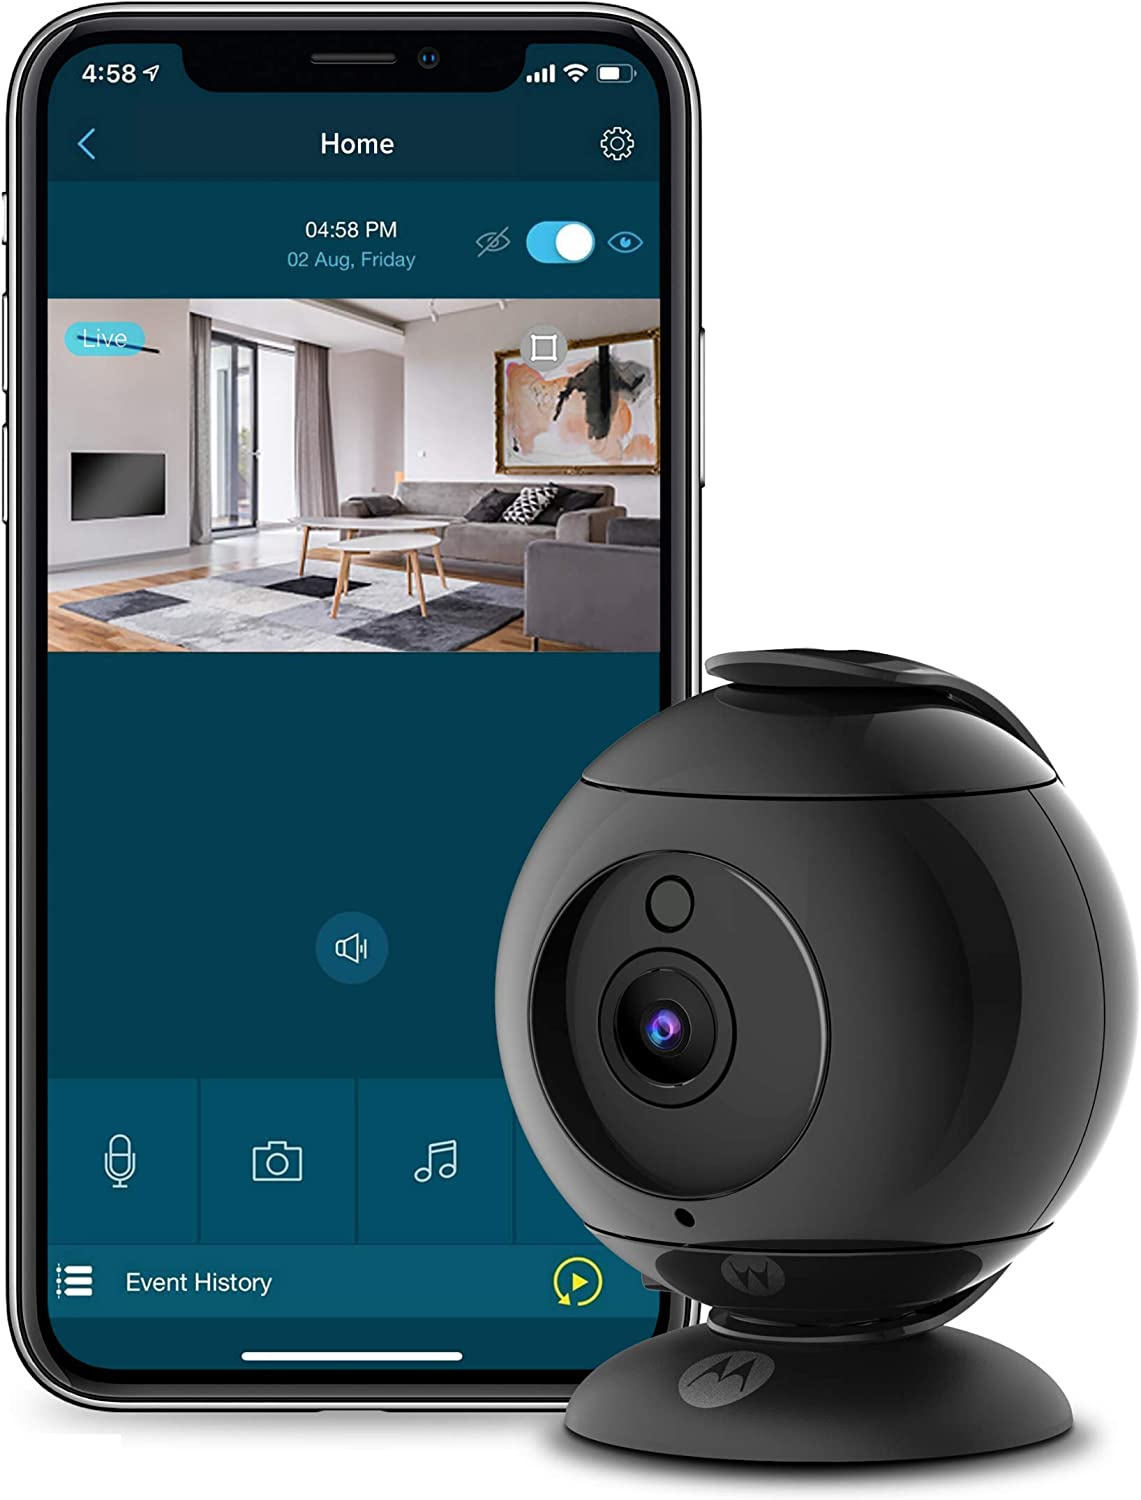 Motorola Focus89 Wireless Indoor Camera for Home – Security Surveillance System with Sound and Motion Detection, Remote Pan, Digital Zoom, Two-Way Talk – 1080p Video, Night Vision, Black